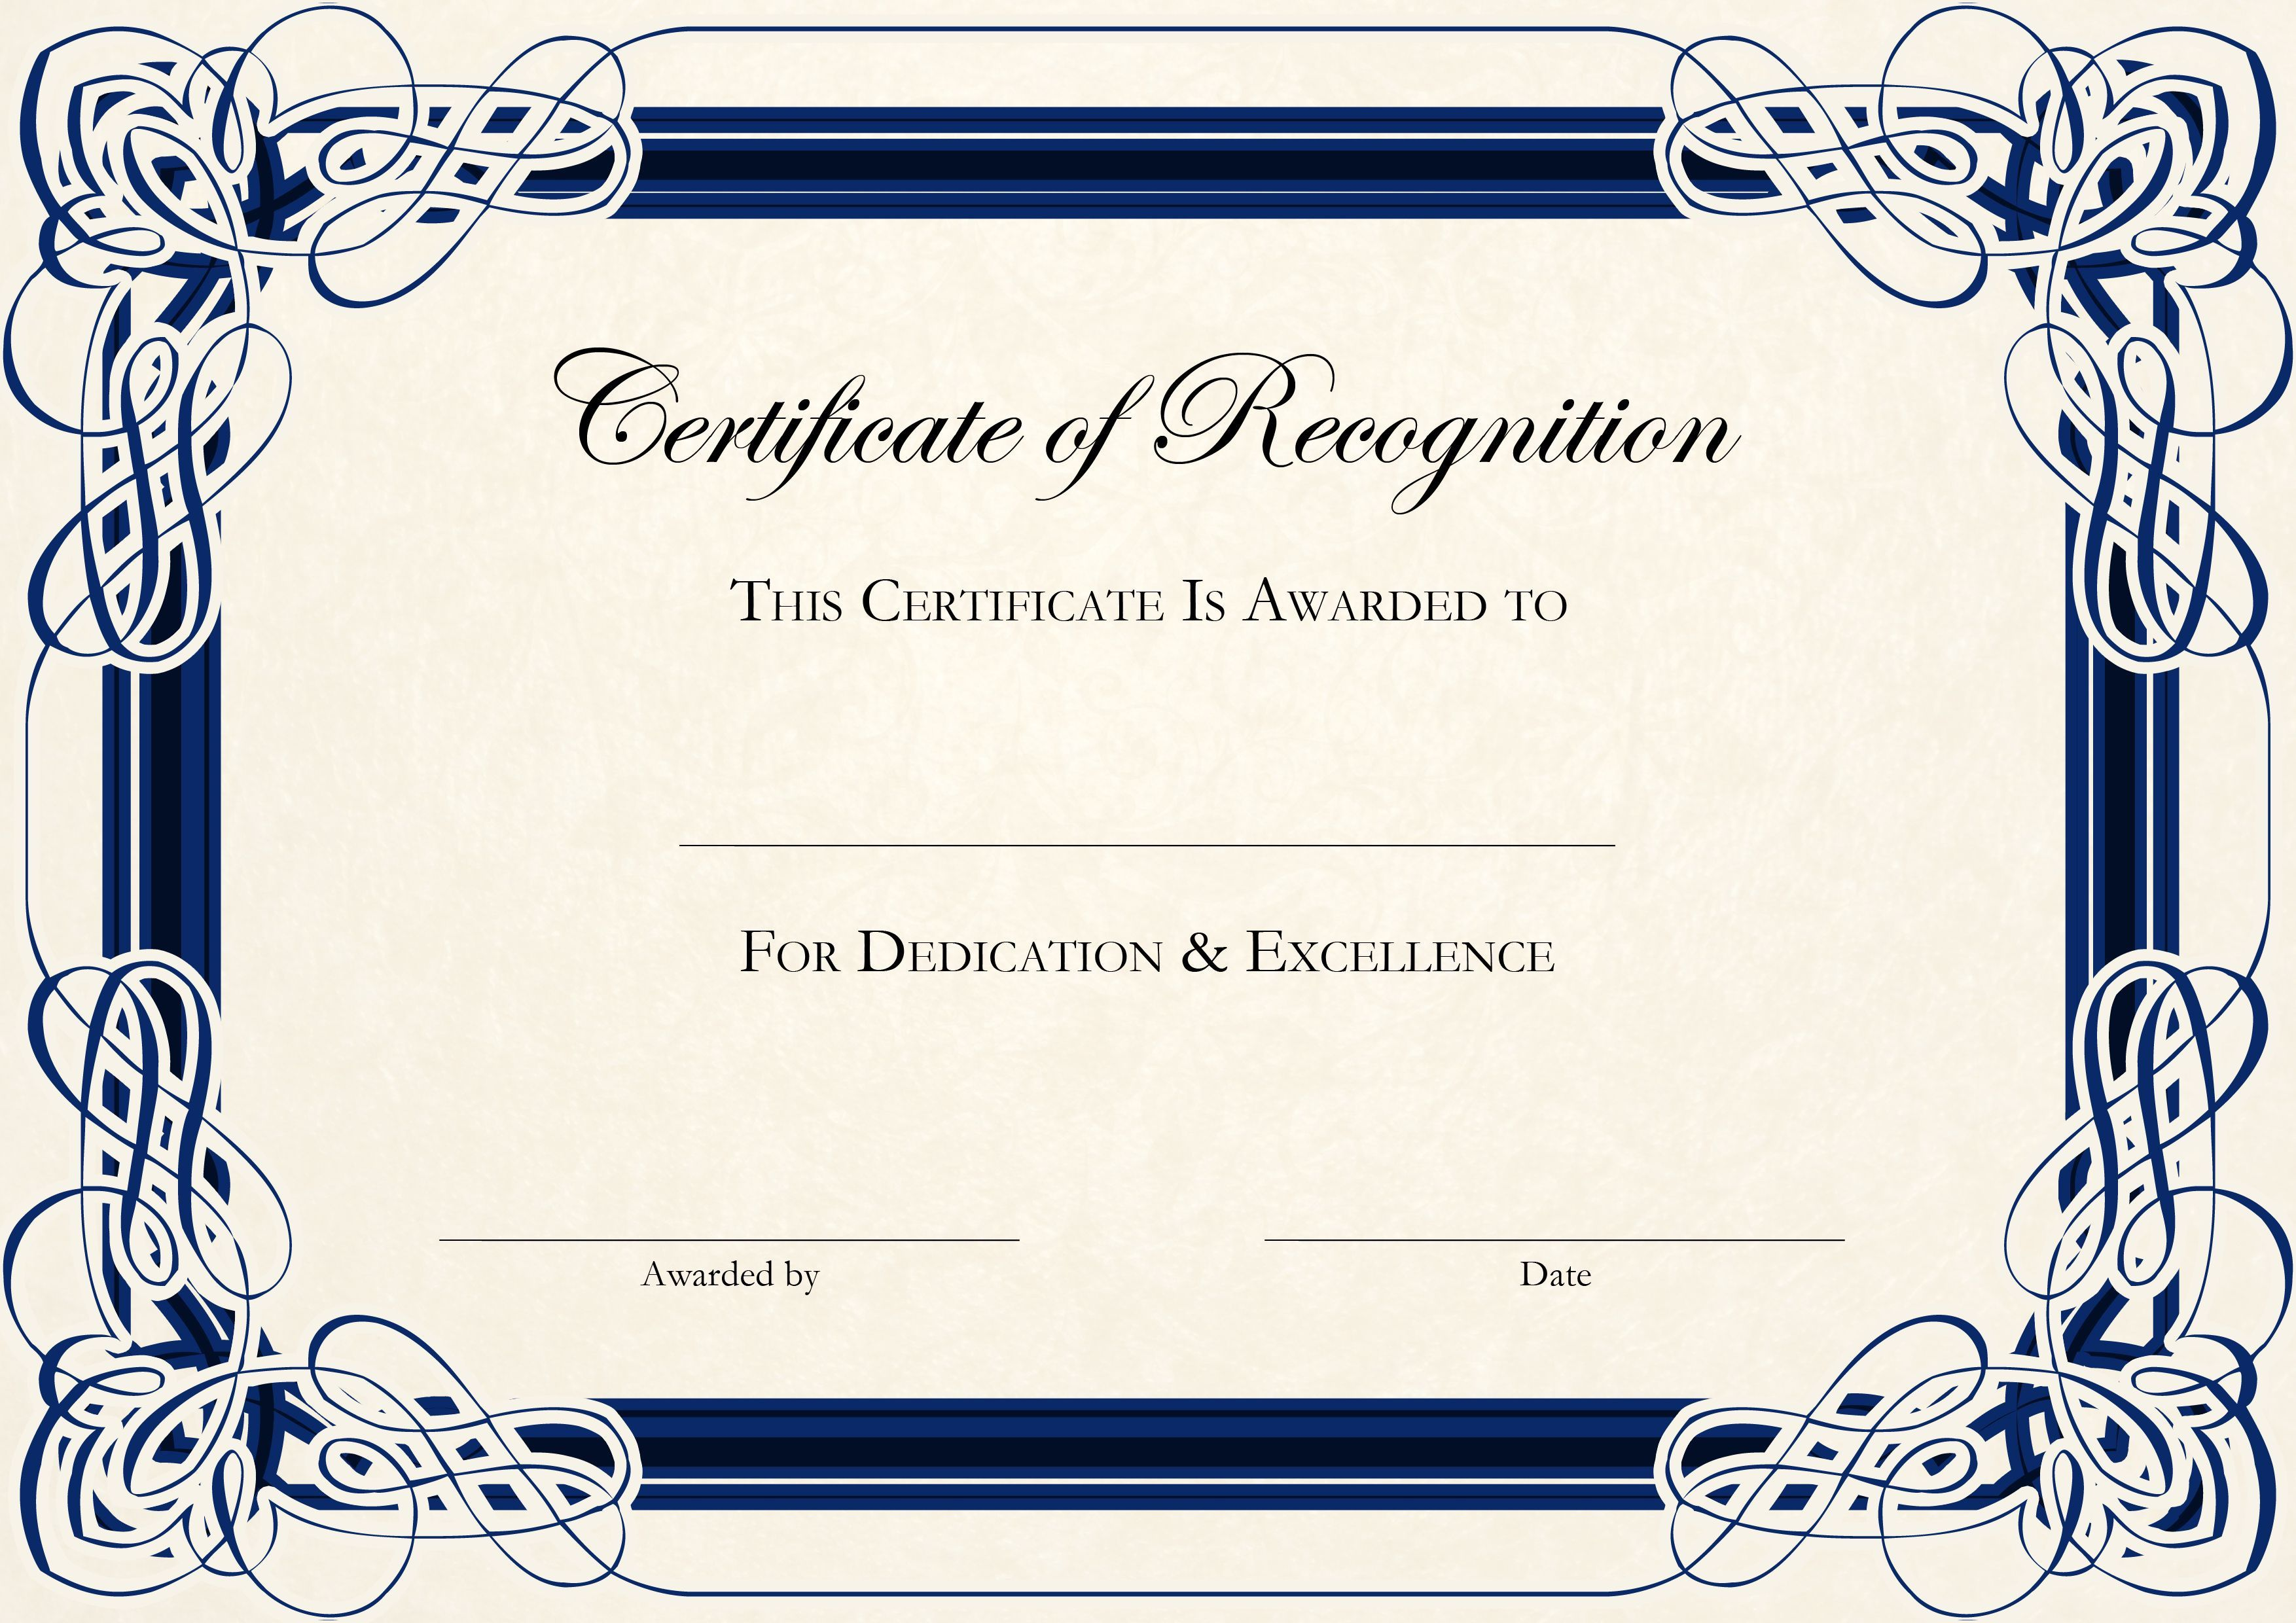 000 Remarkable Free Certificate Template Word Download Picture  Of Appreciation Doc Award BorderFull